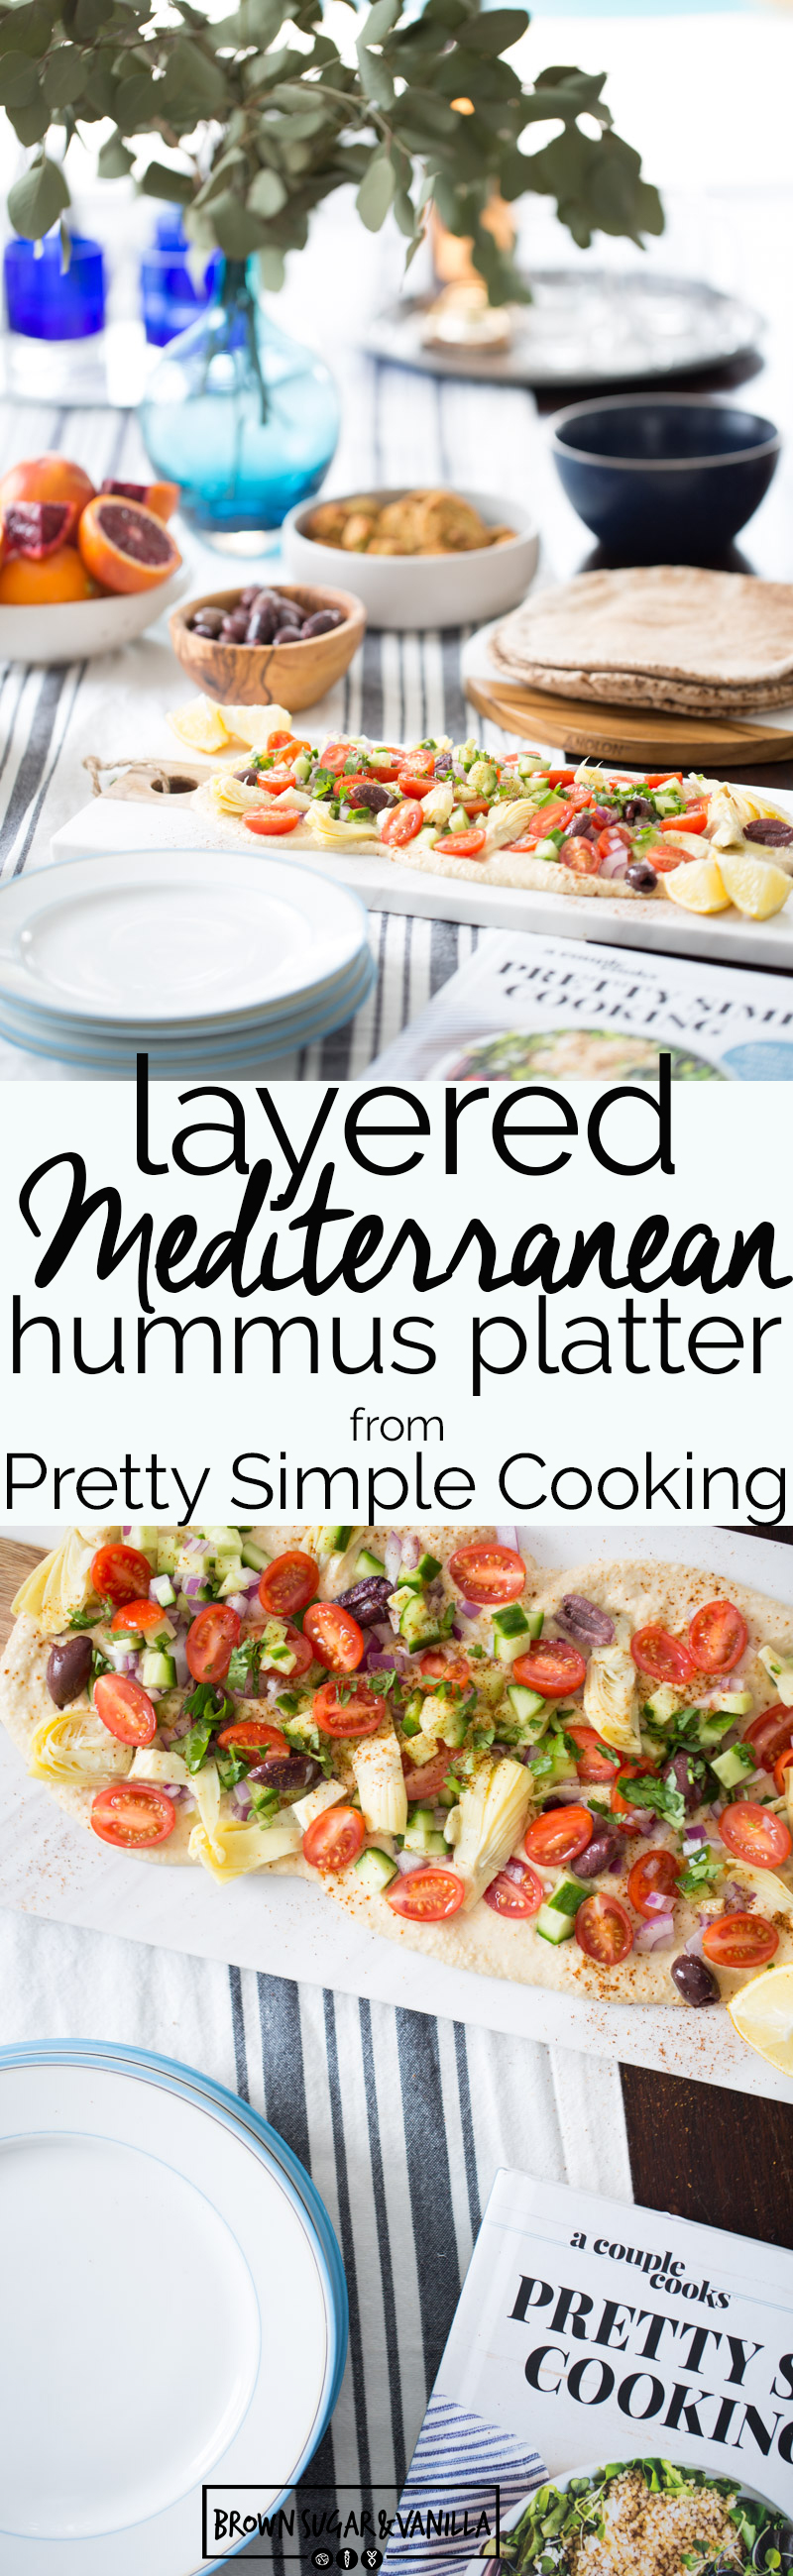 This recipe for Layered Mediterranean Hummus from Pretty Simple Cooking it is delicious and very easy to put together. It is a show stopper and crowd pleaser.